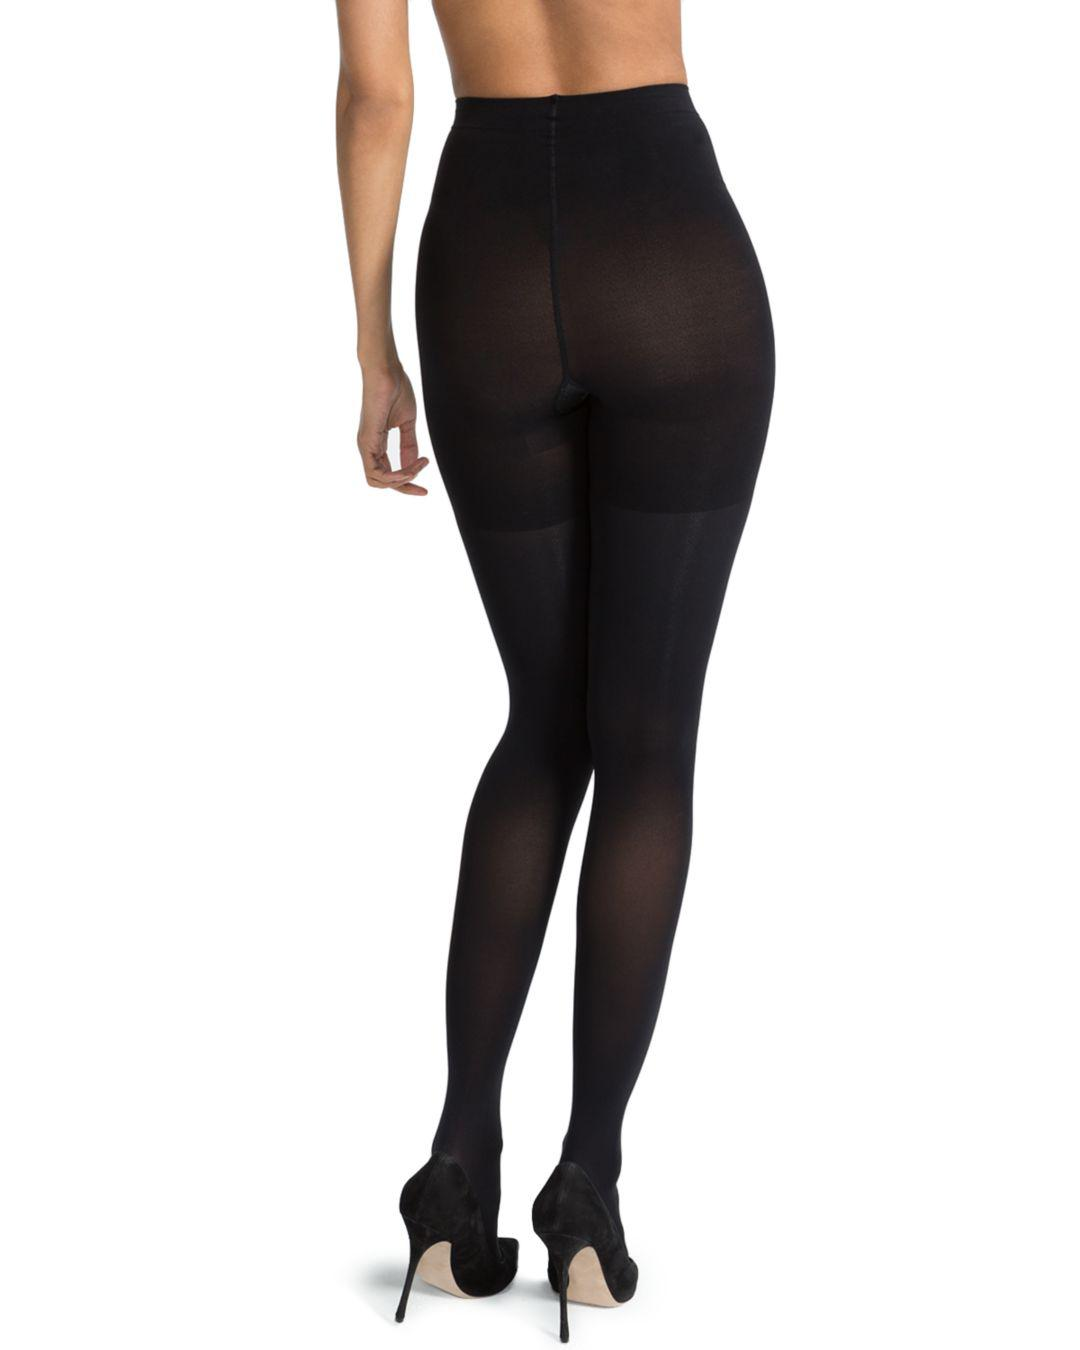 a7a1fe80554 Lyst - Spanx Luxe Leg Tights in Black - Save 26%